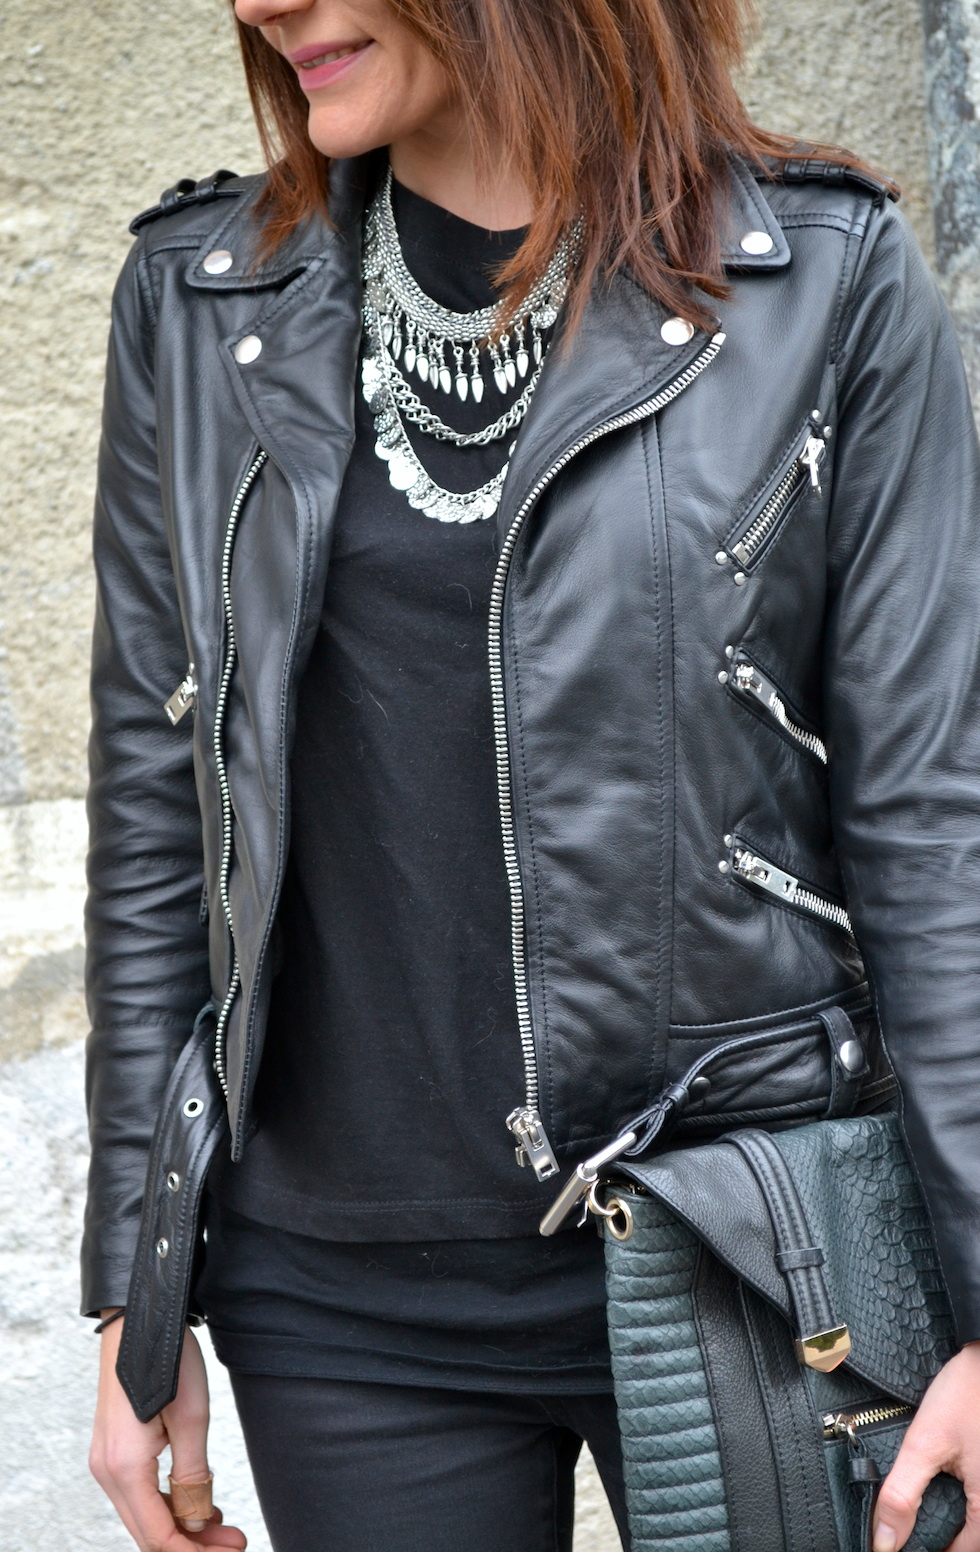 3_Statement Kette Fashionfriends, Bikerjacke The Kooples Fashionblog Mekivi Schweiz